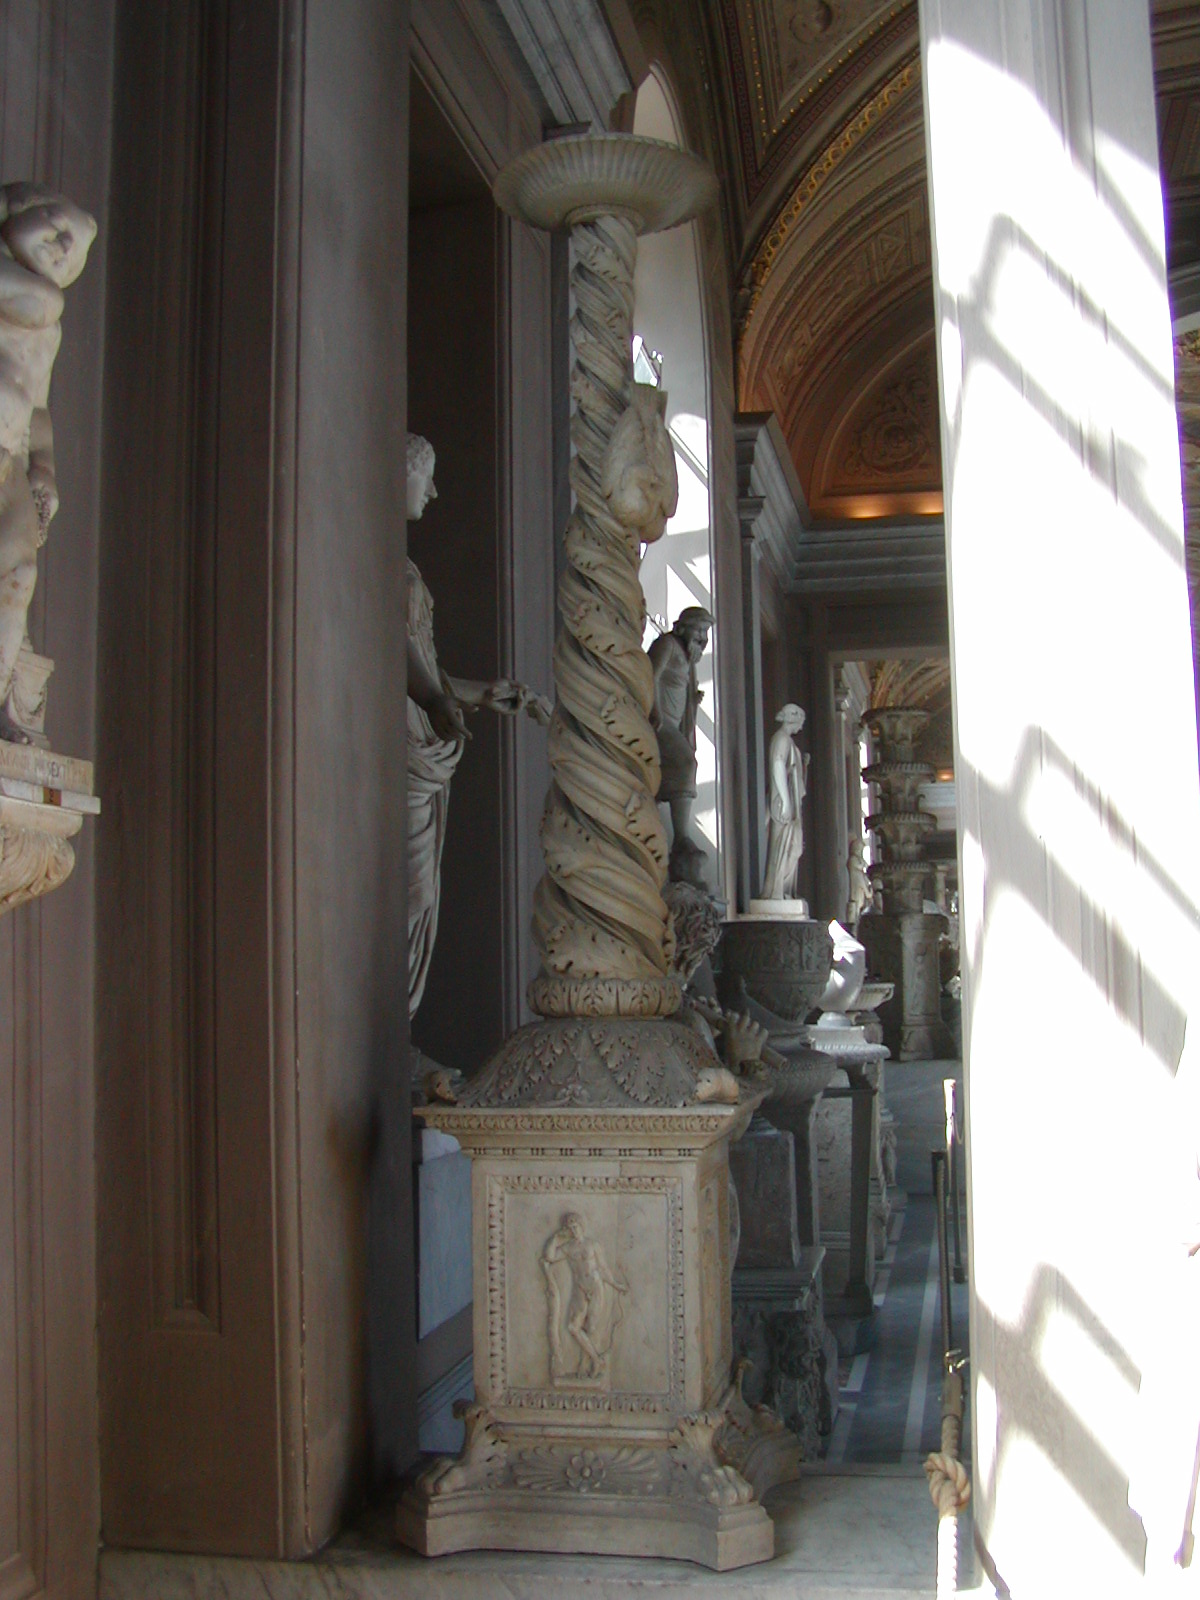 Gallery of the Candelabra - 2002-09-10-150854